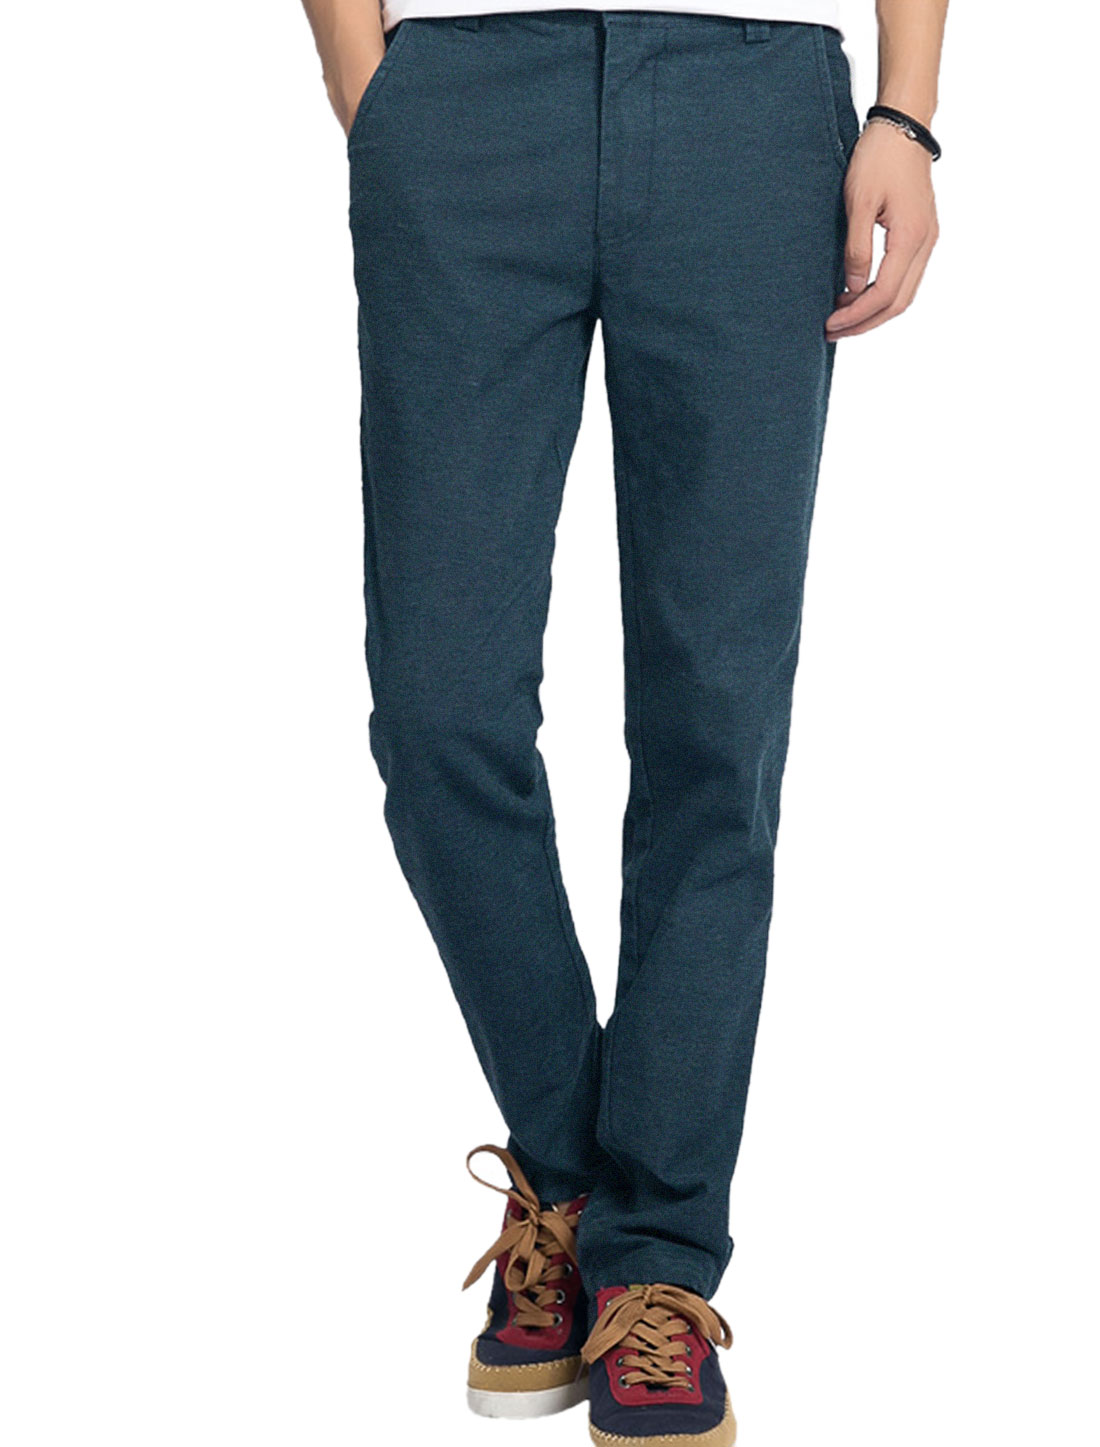 Men Hip Pockets with Button Decor Zip Fly Slim Pants Steel Blue W34